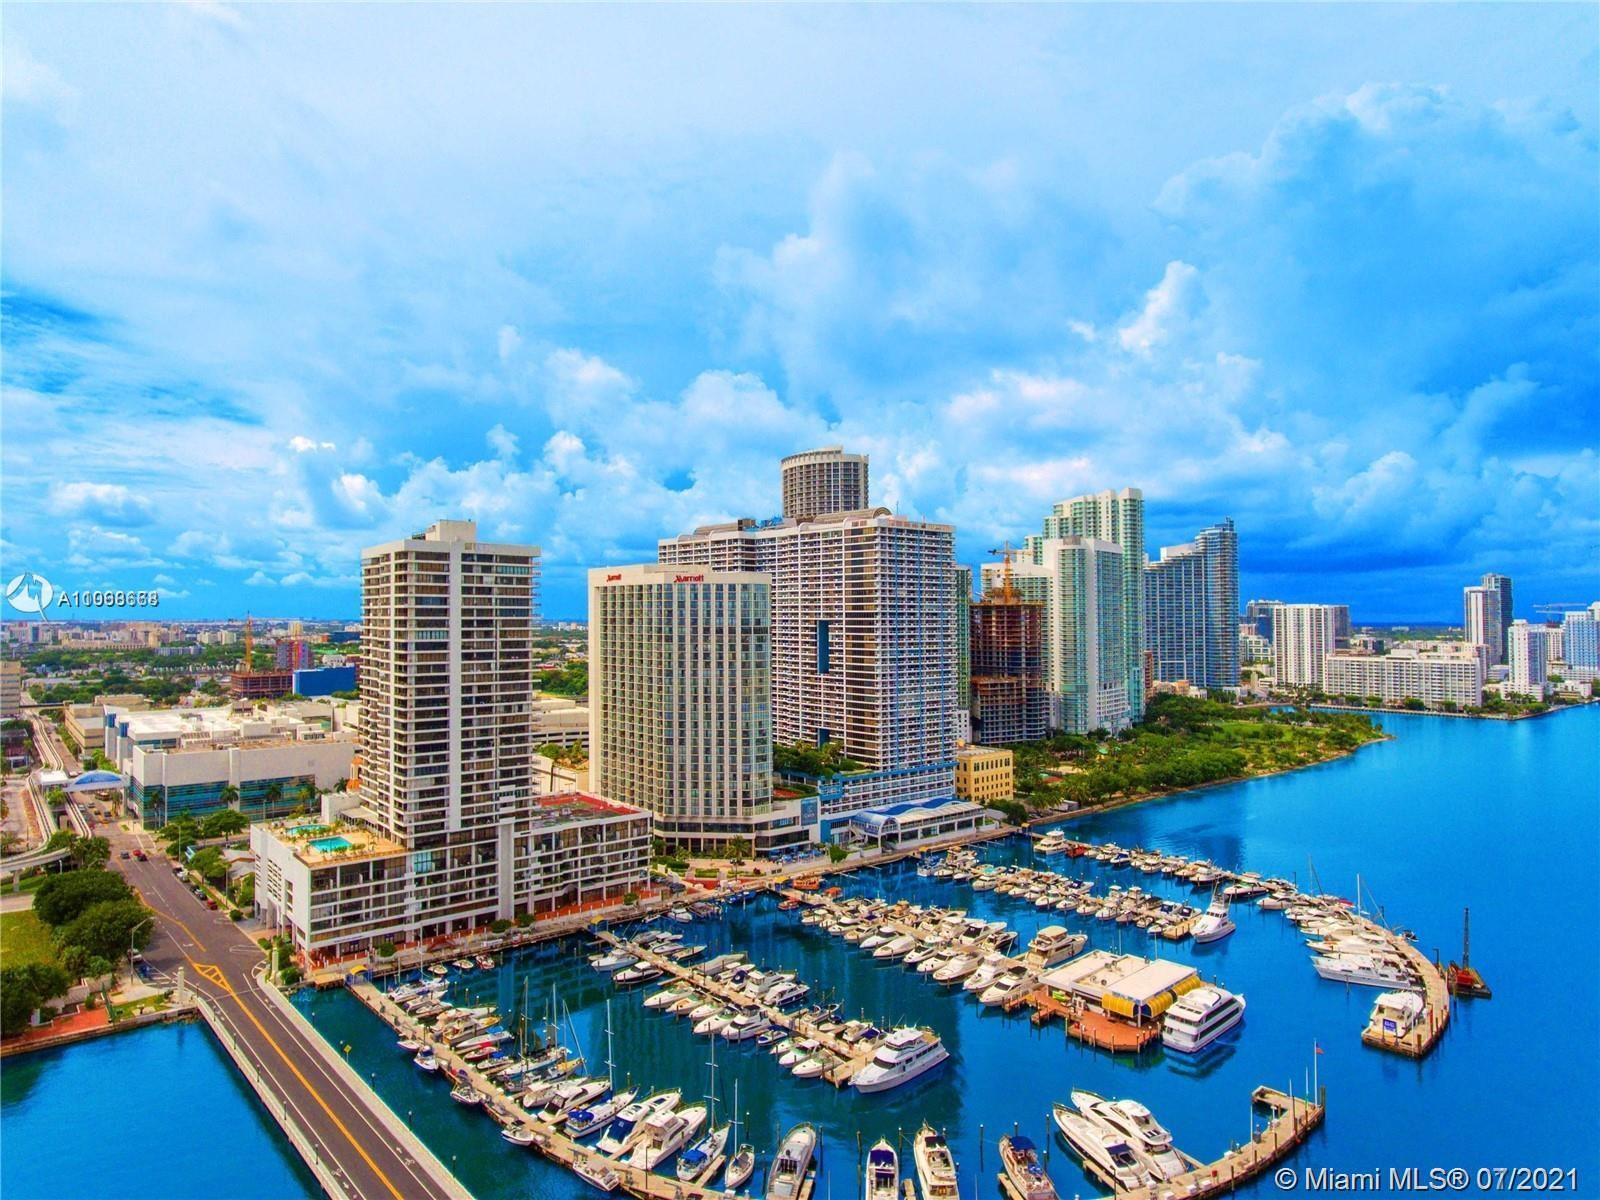 Beautiful 1bed/1.5 bath residence at the Venetia Condo with amazing views of Biscayne Bay & Miami Be